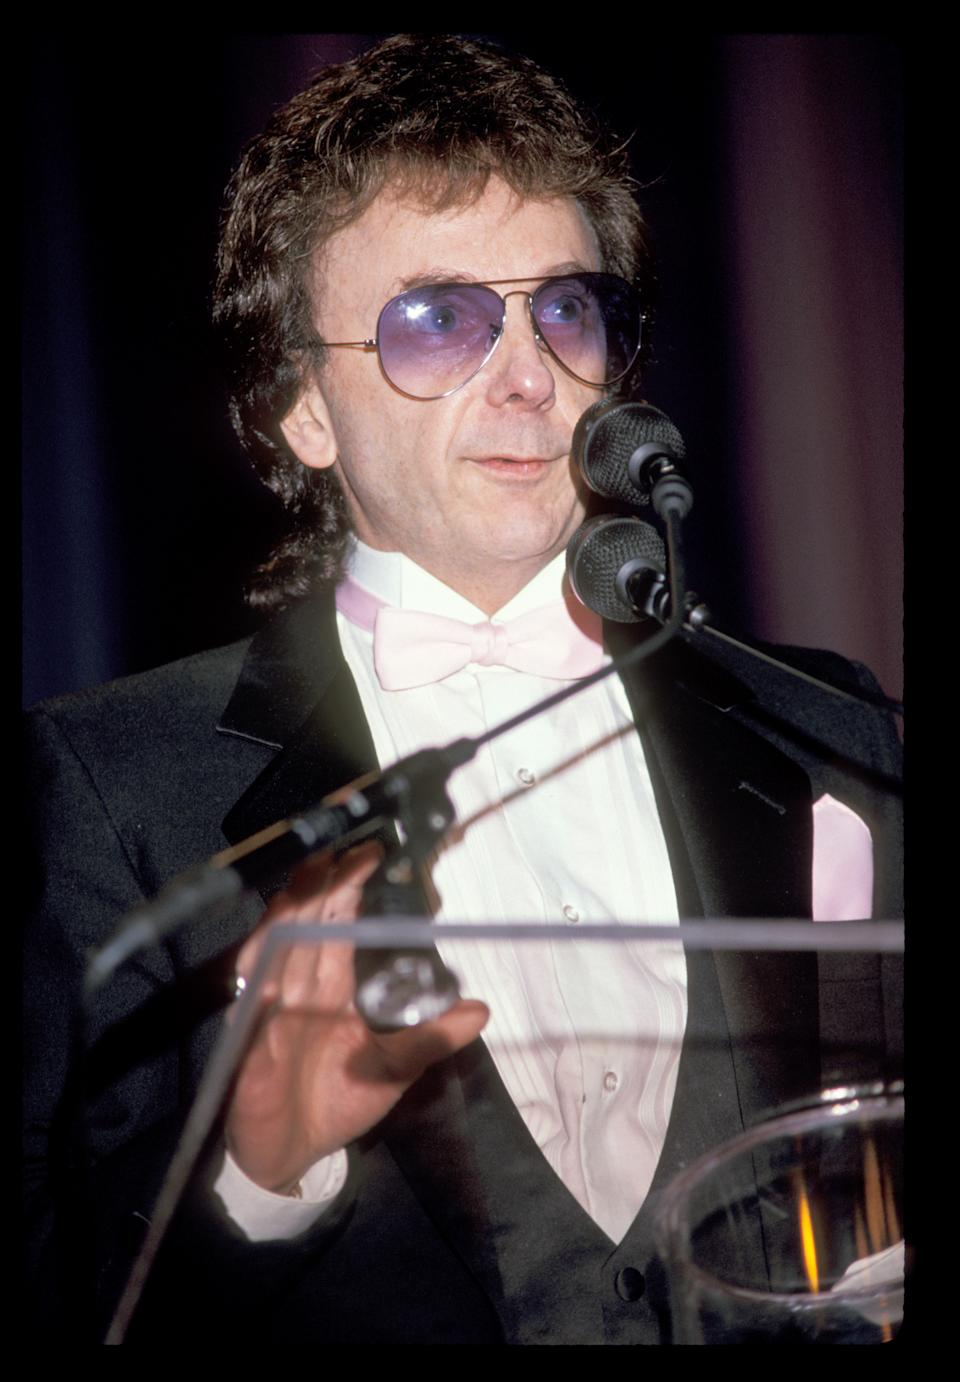 Phil Spector photographed during the Rock and Roll Hall of Fame induction ceremony in 1989. (Photo by KMazur/WireImage)